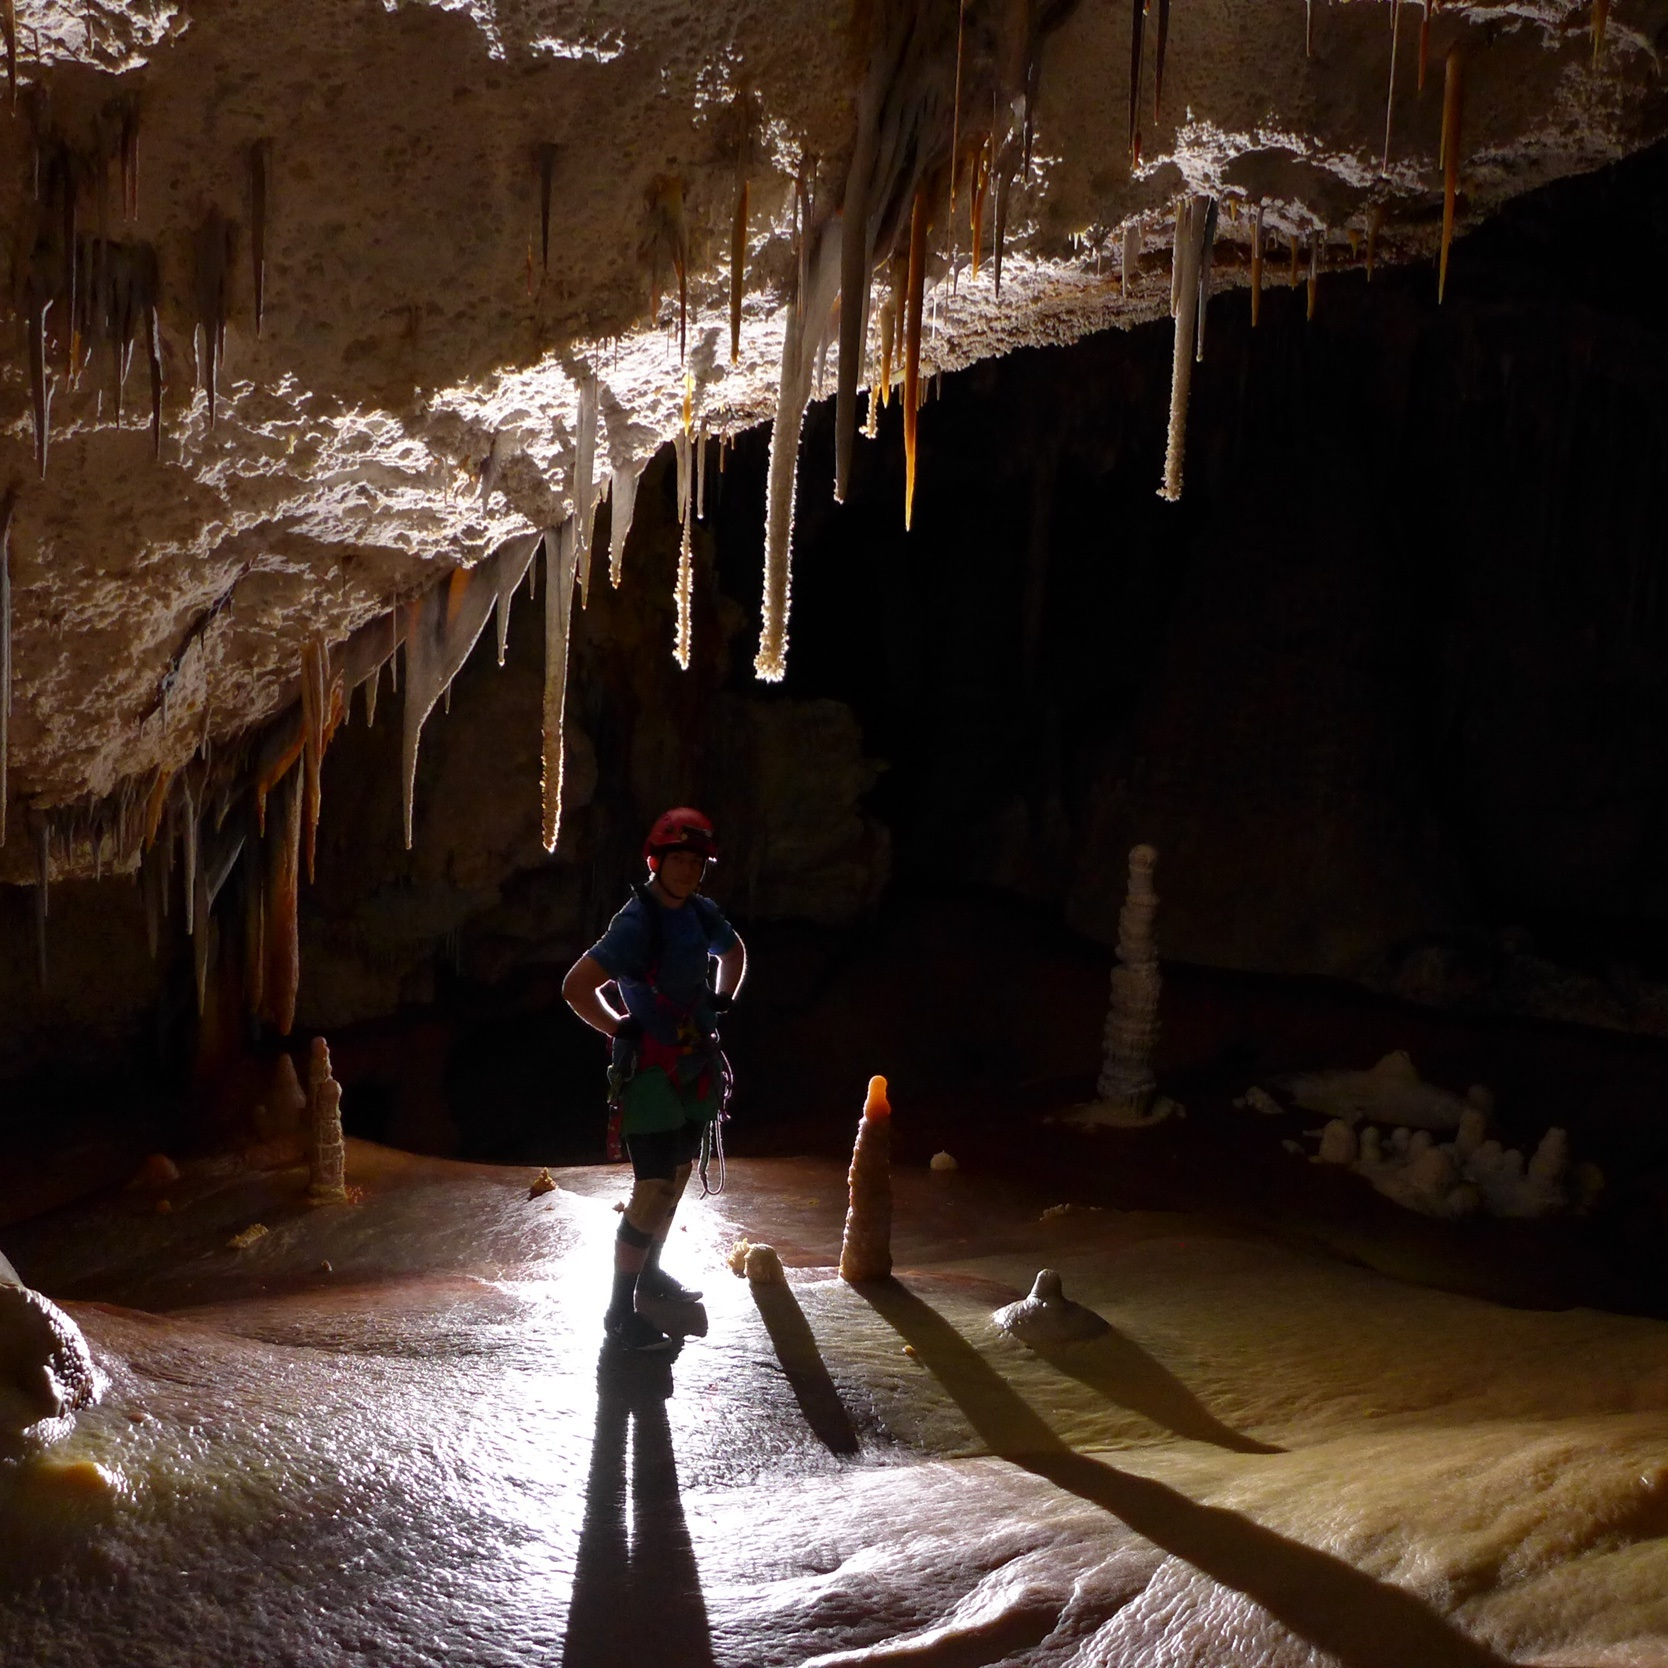 Get started caving - Interested in caving? Figuring out how to get started is often the most difficult part. It usually starts with a grotto (caving club) in your area.